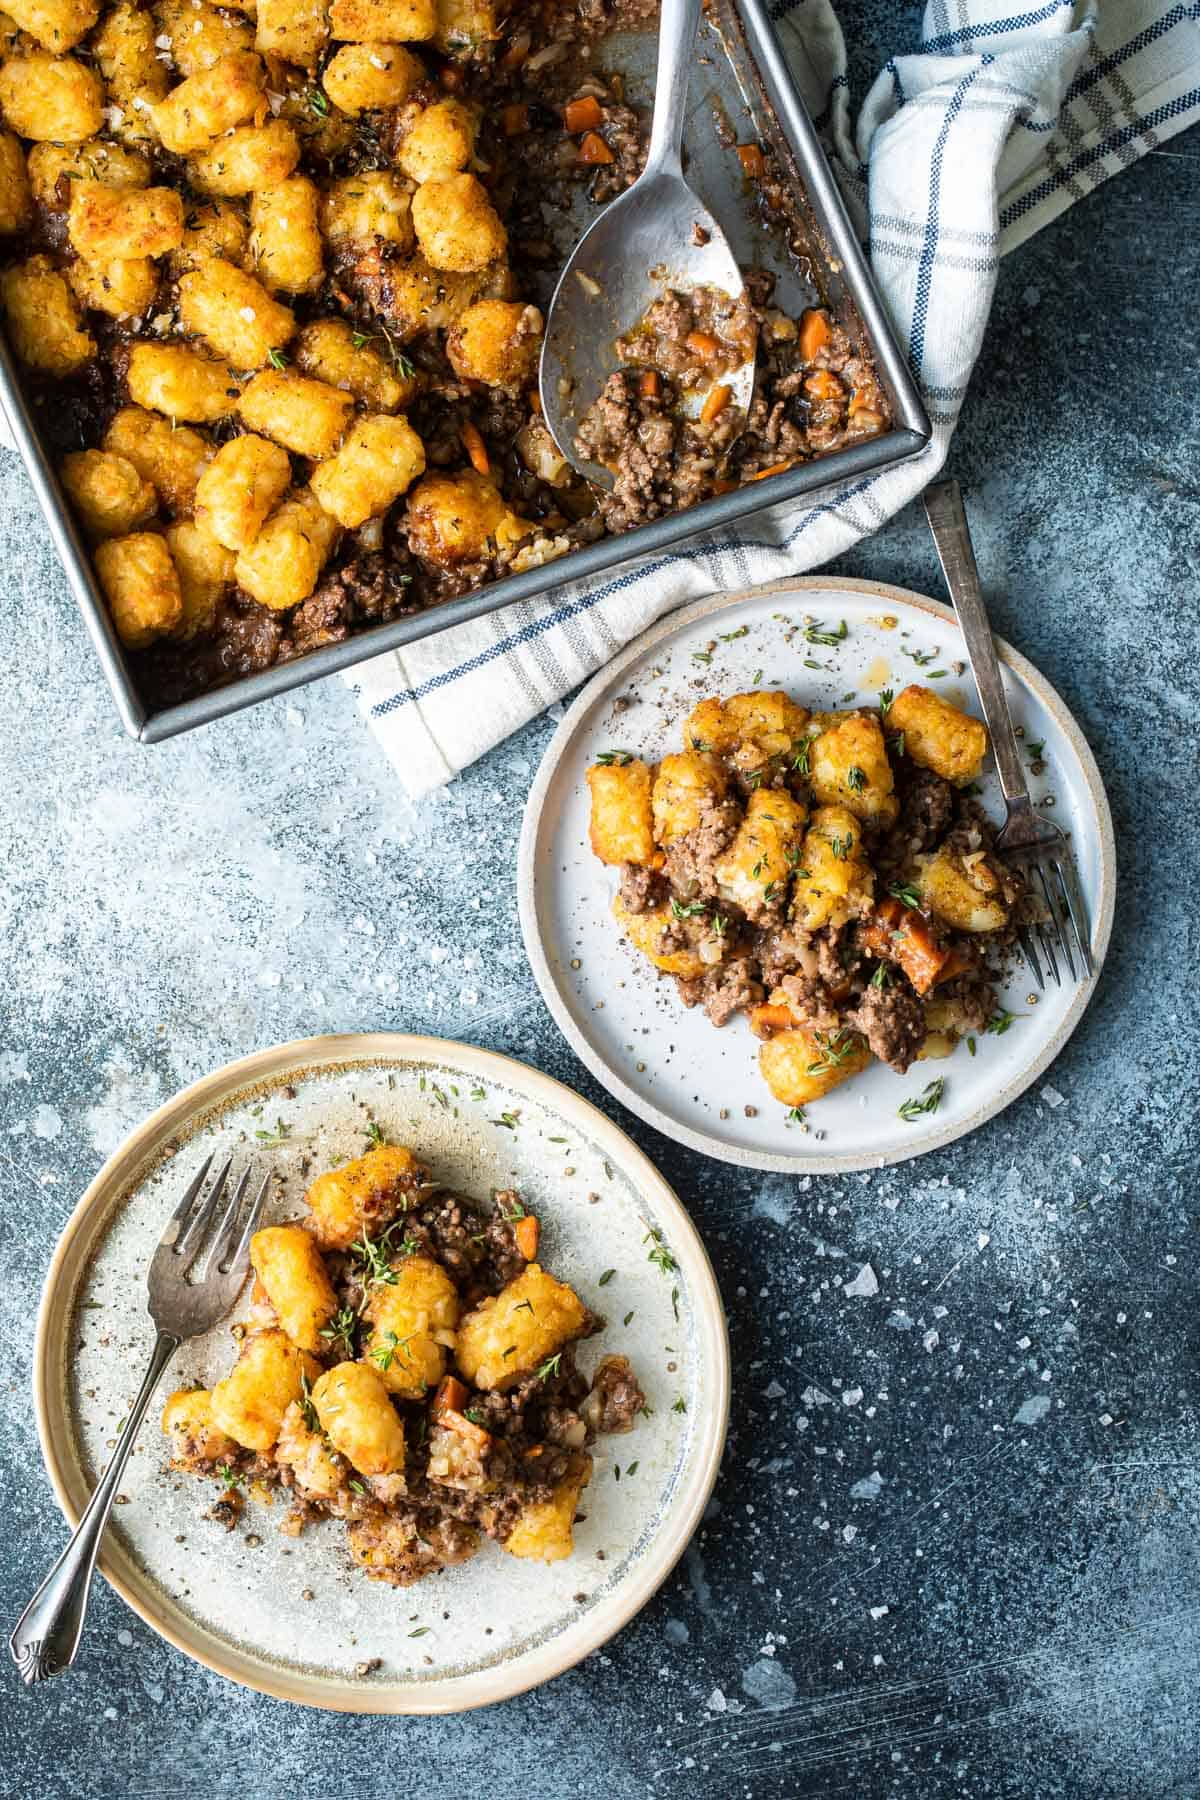 2 plates with scoops of cottage pie and crispy tater tots